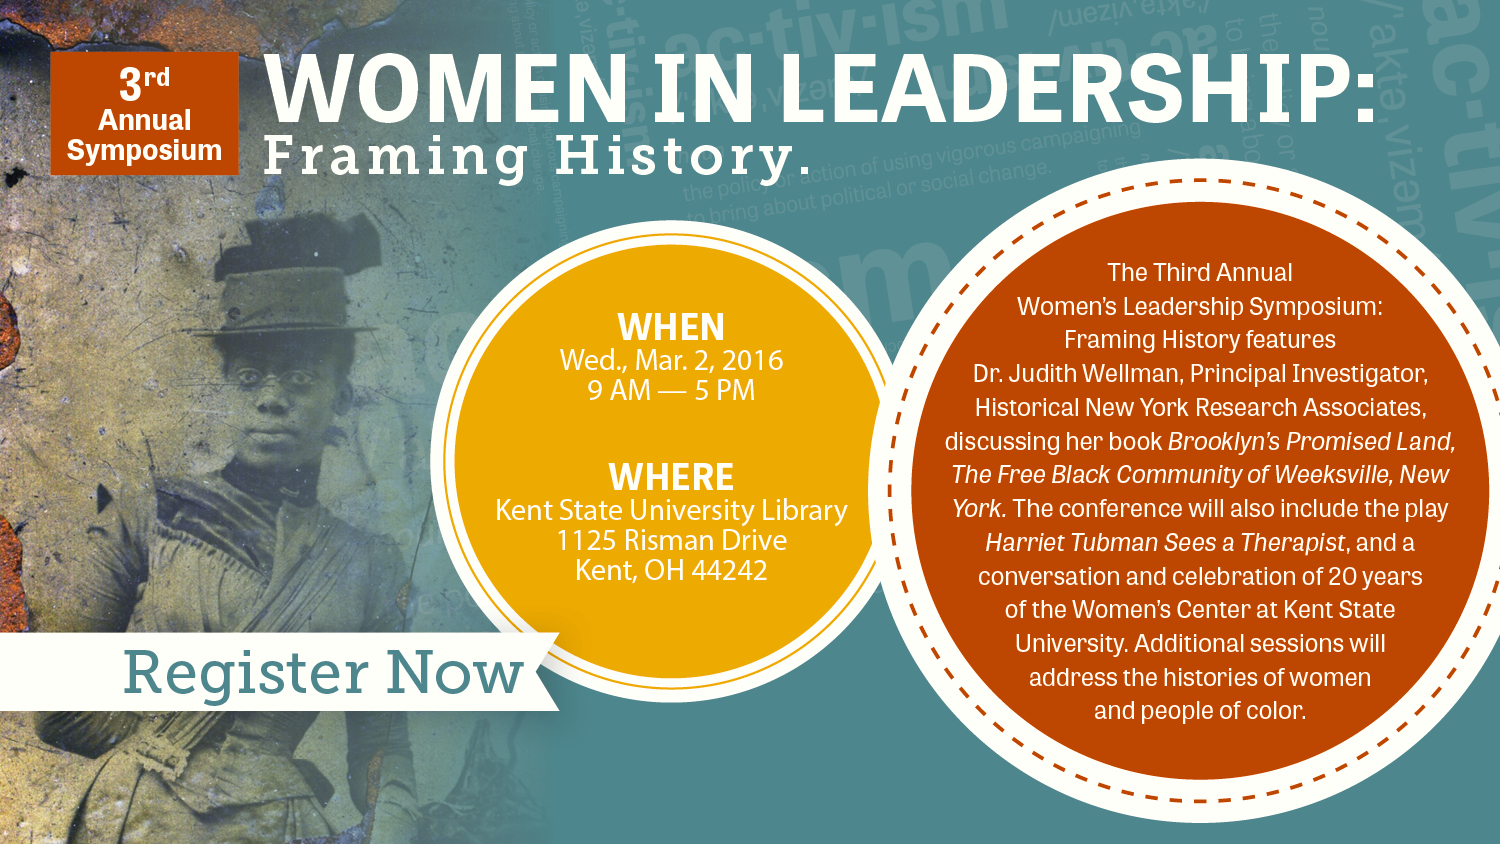 Show more about The Third Annual Women's Leadership Symposium: Framing History